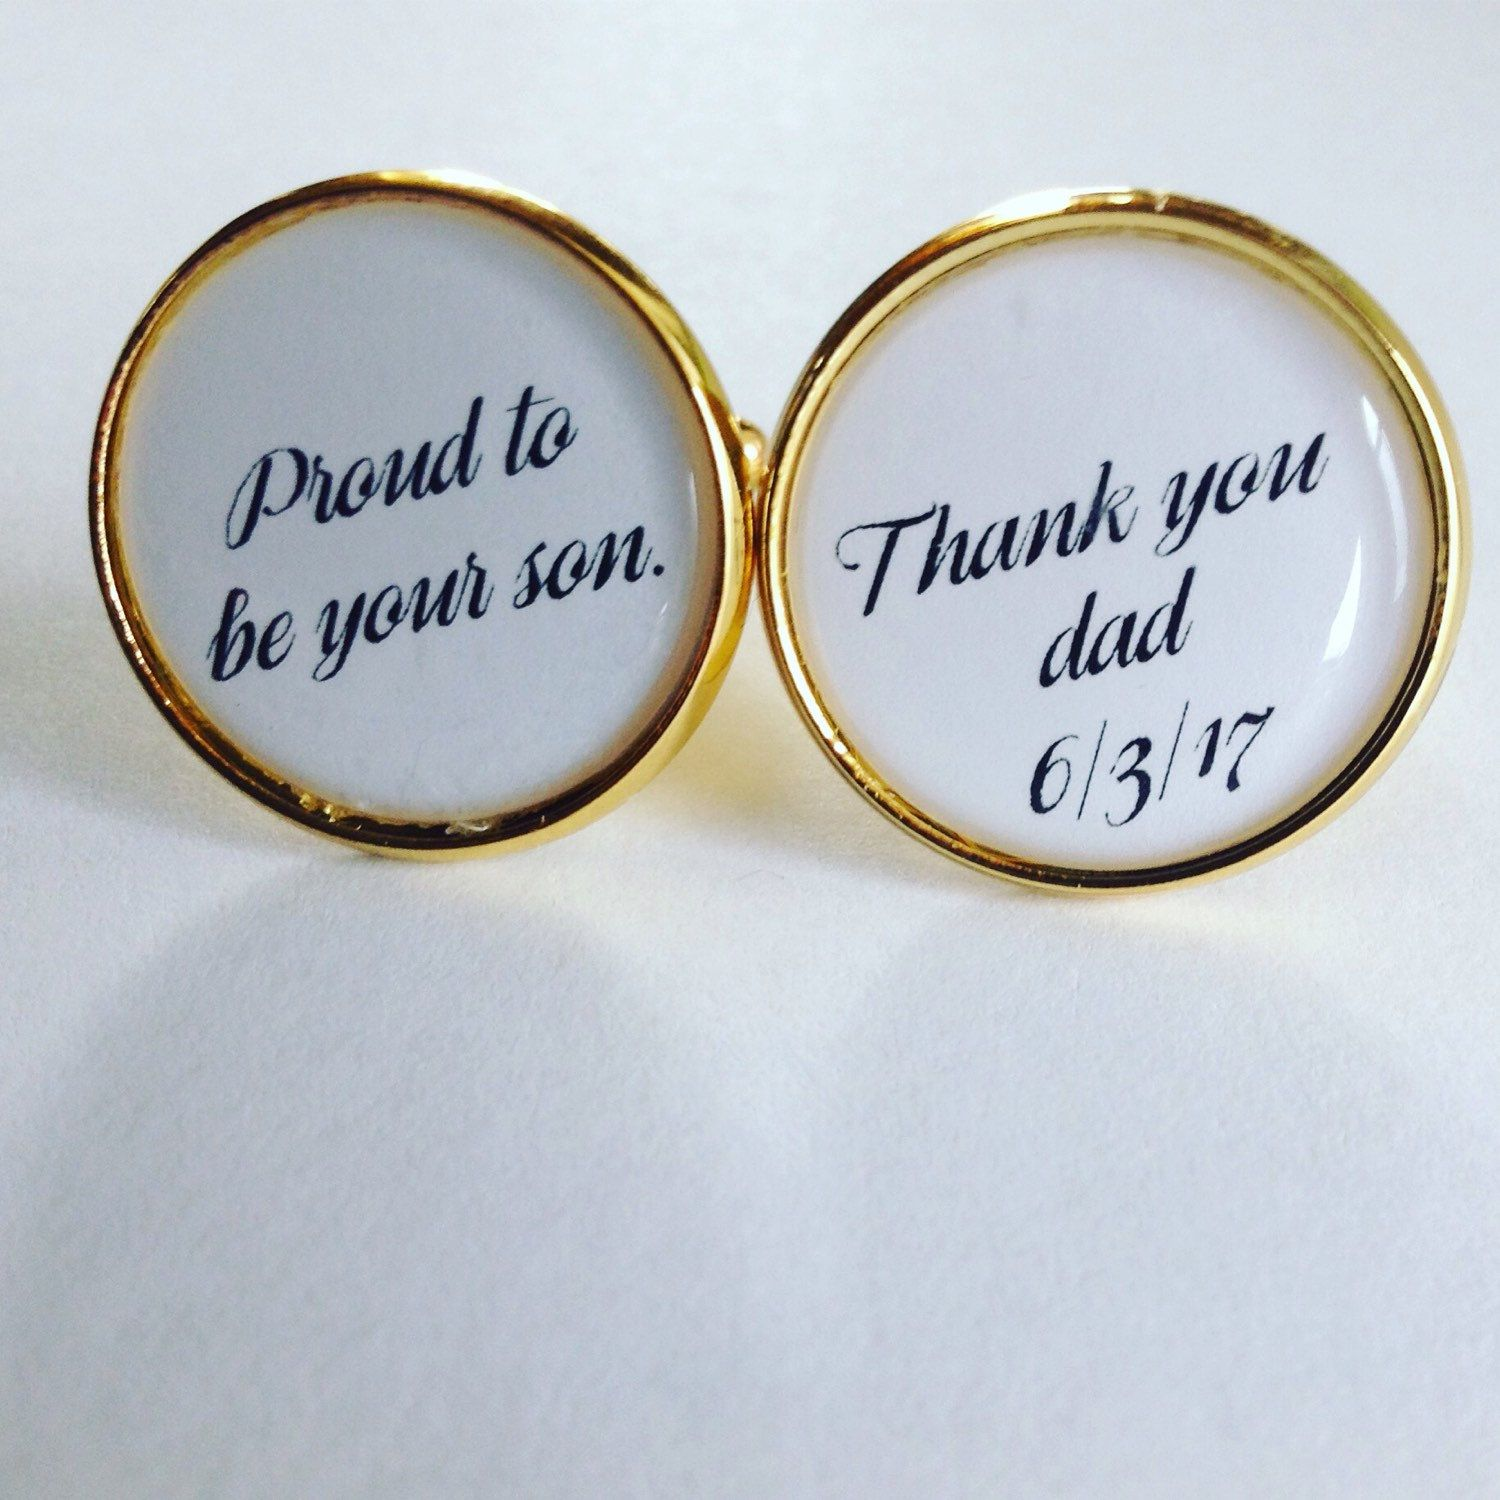 Wedding Date Cufflinks Wedding Keepsake Gift for Dad Father of the Bride Gift from Bride Father of the Bride Cufflinks Wedding Date Gift